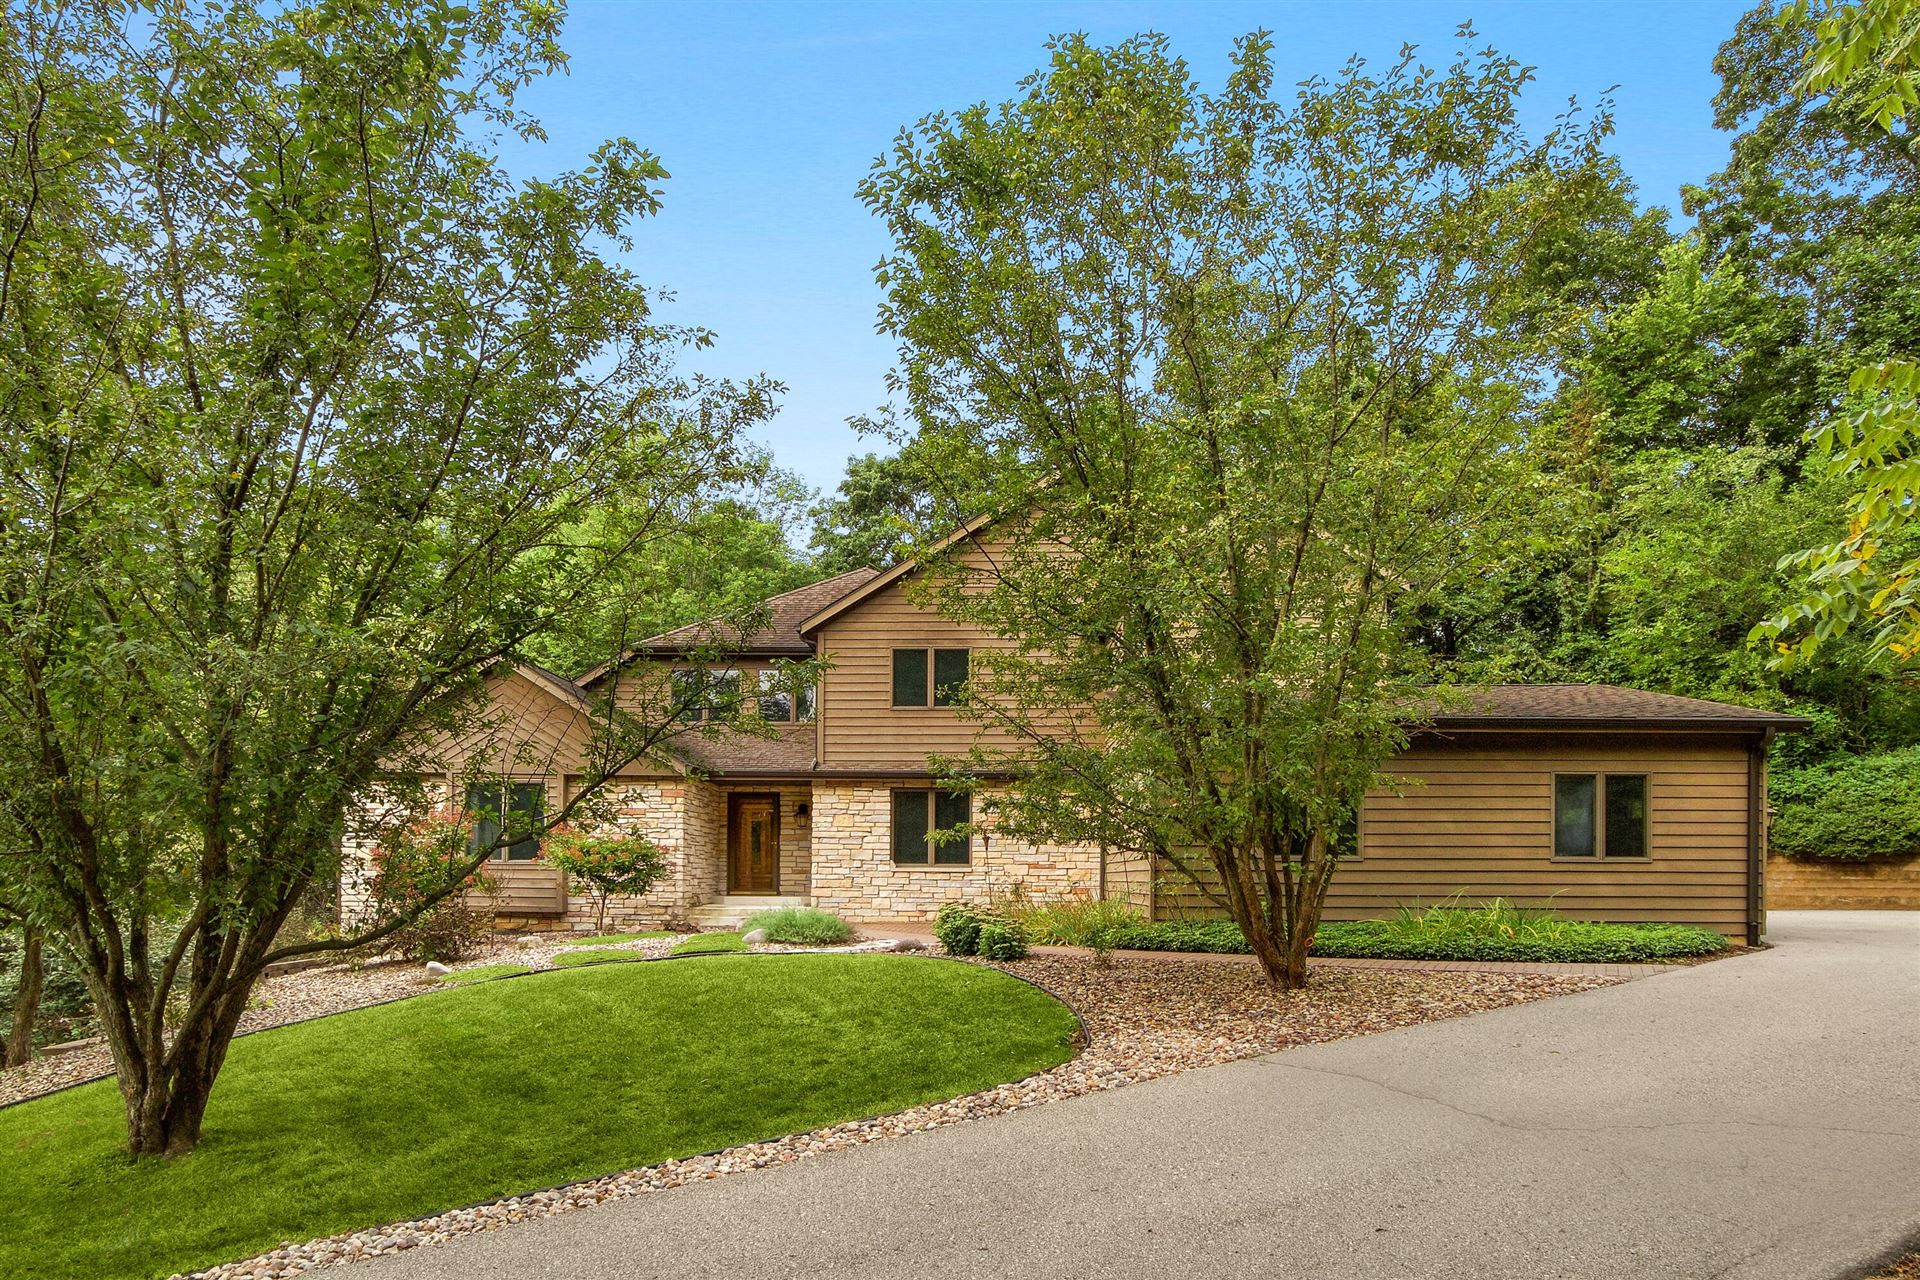 W5548 Eagle Point Dr, Shelby, WI 54601 - MLS#: 1763205